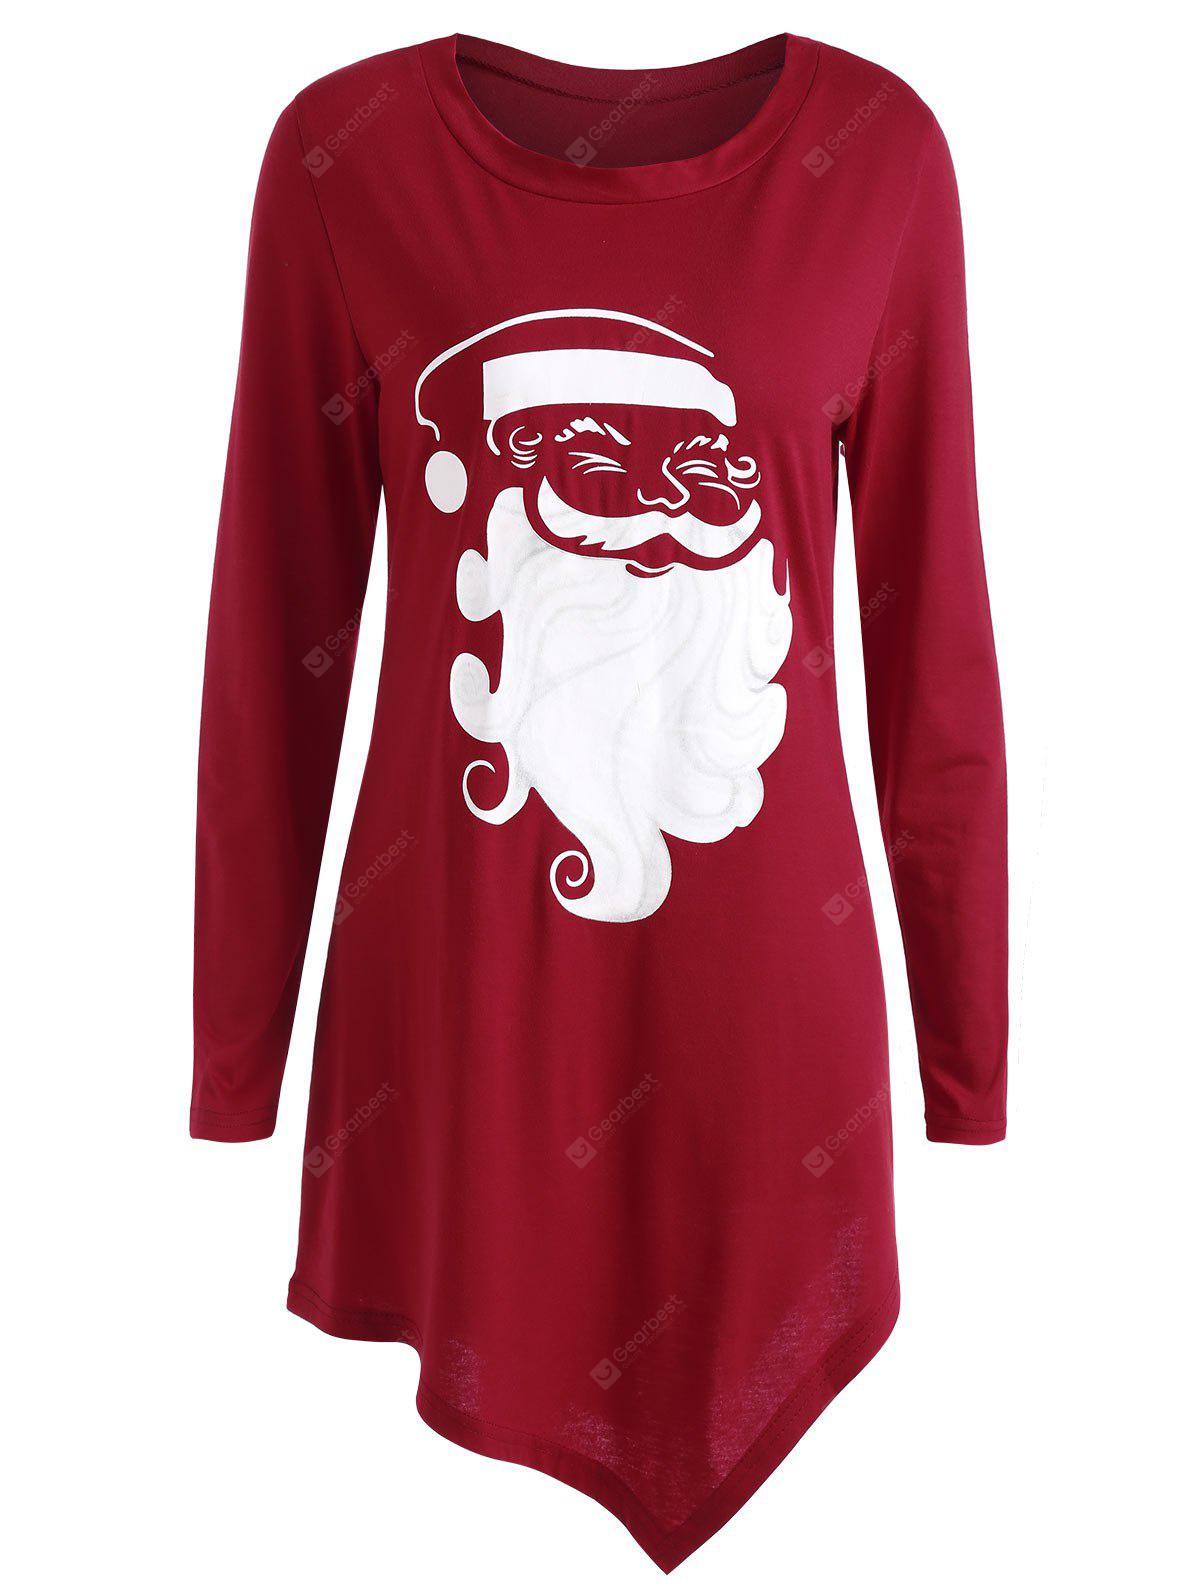 Christmas Santa Claus Asymmetrical T-shirt